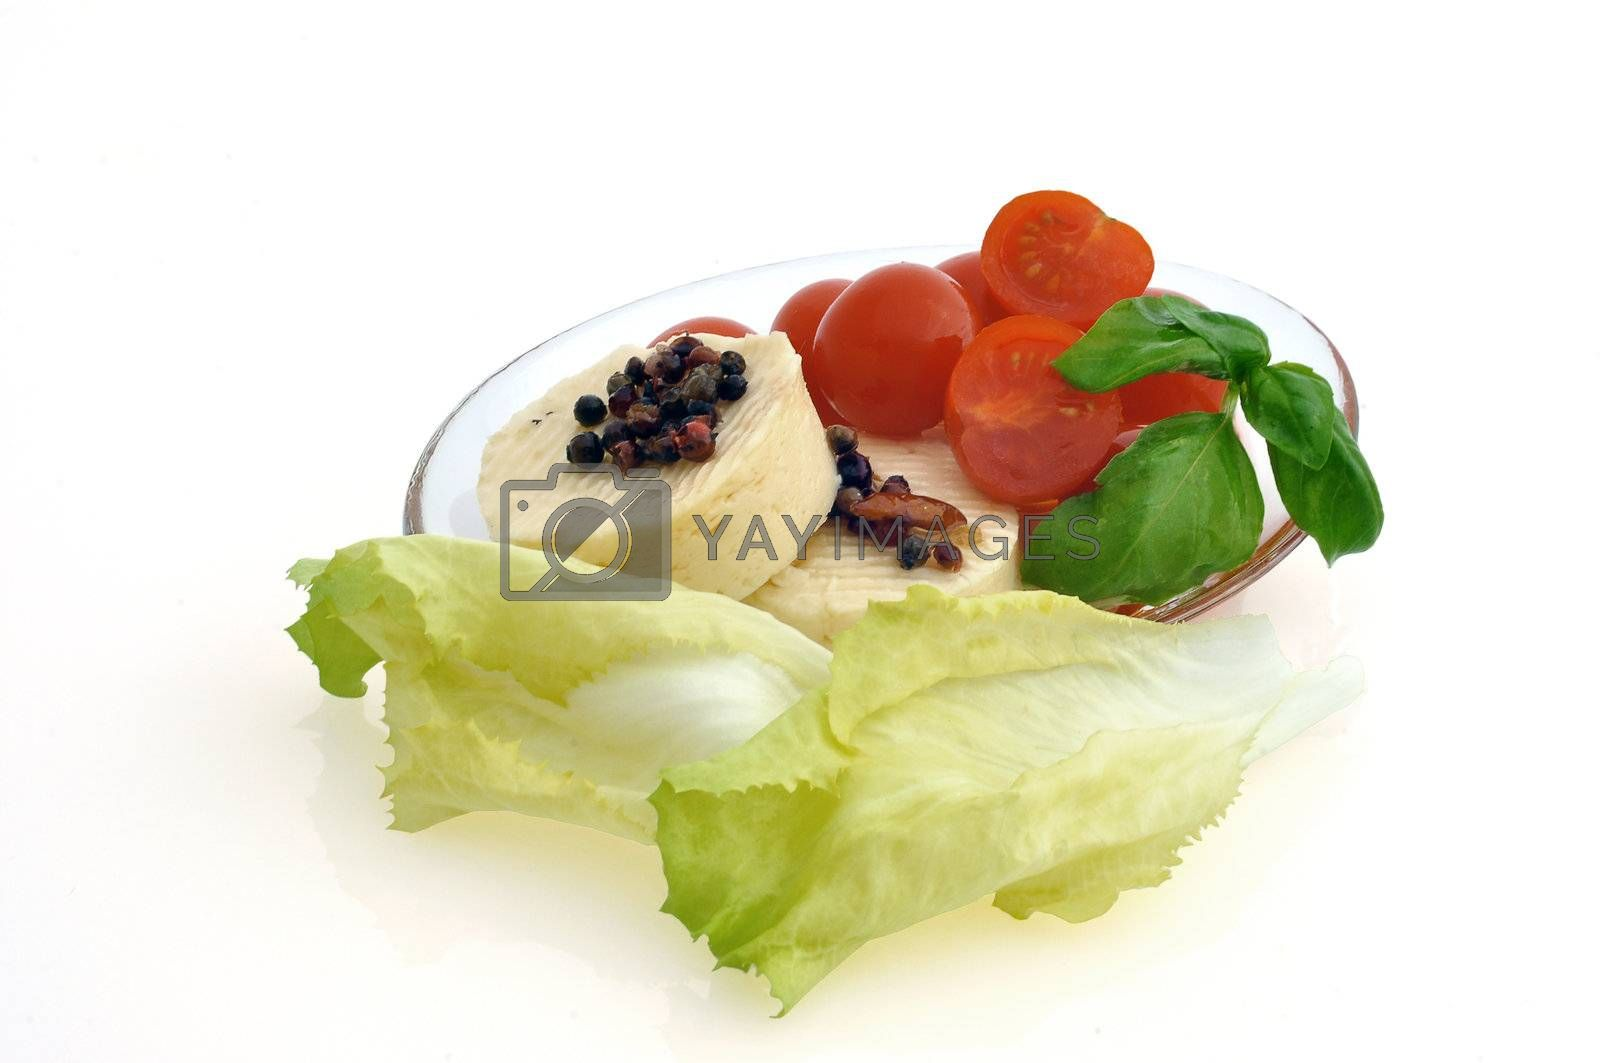 tomatoes, cheese and salad on white background